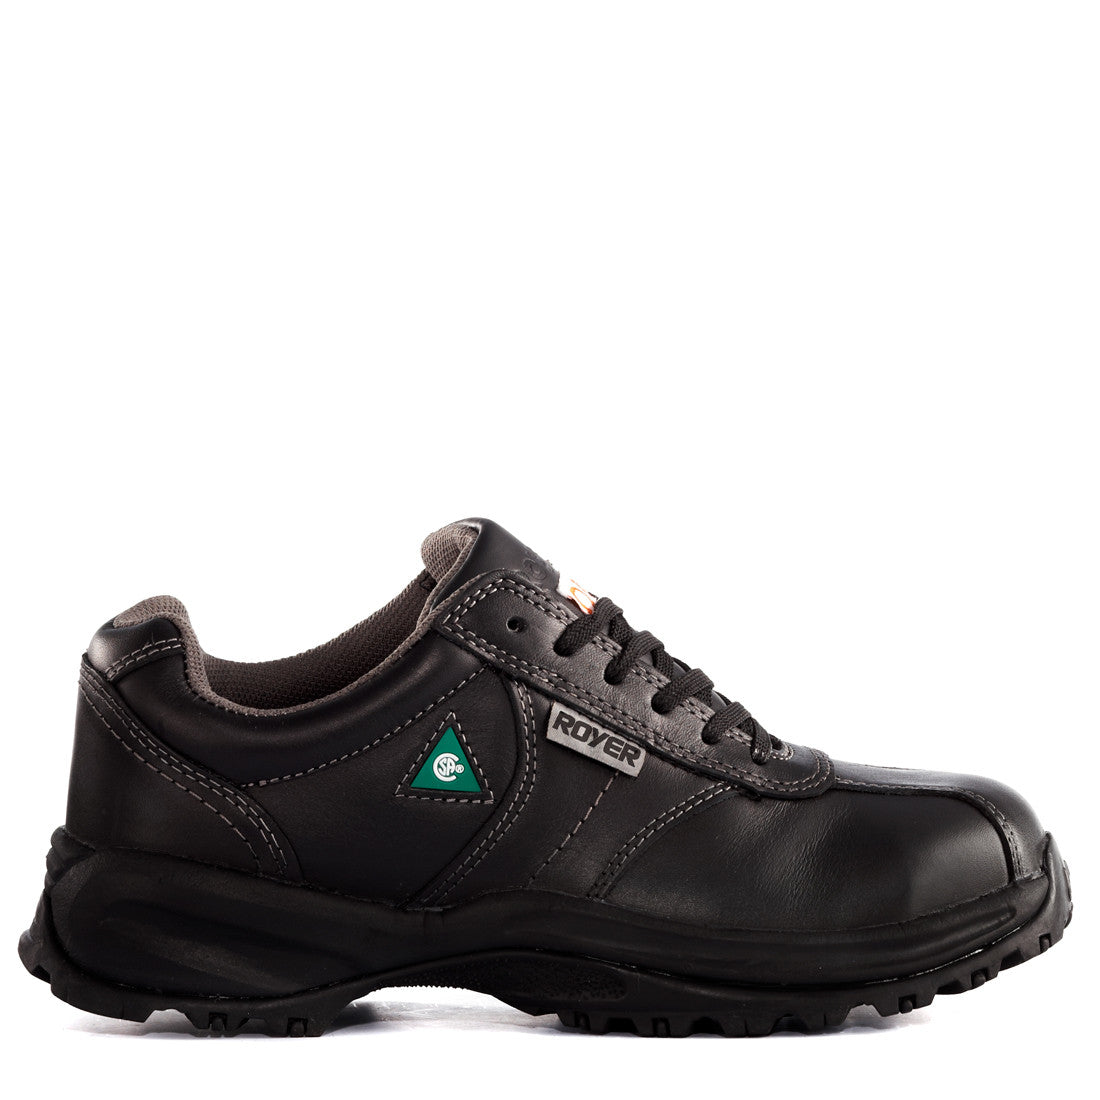 Royer 10-501 Safety Shoe Steel Cap Non-Metallic Sole CSA - Coordinator's Shop